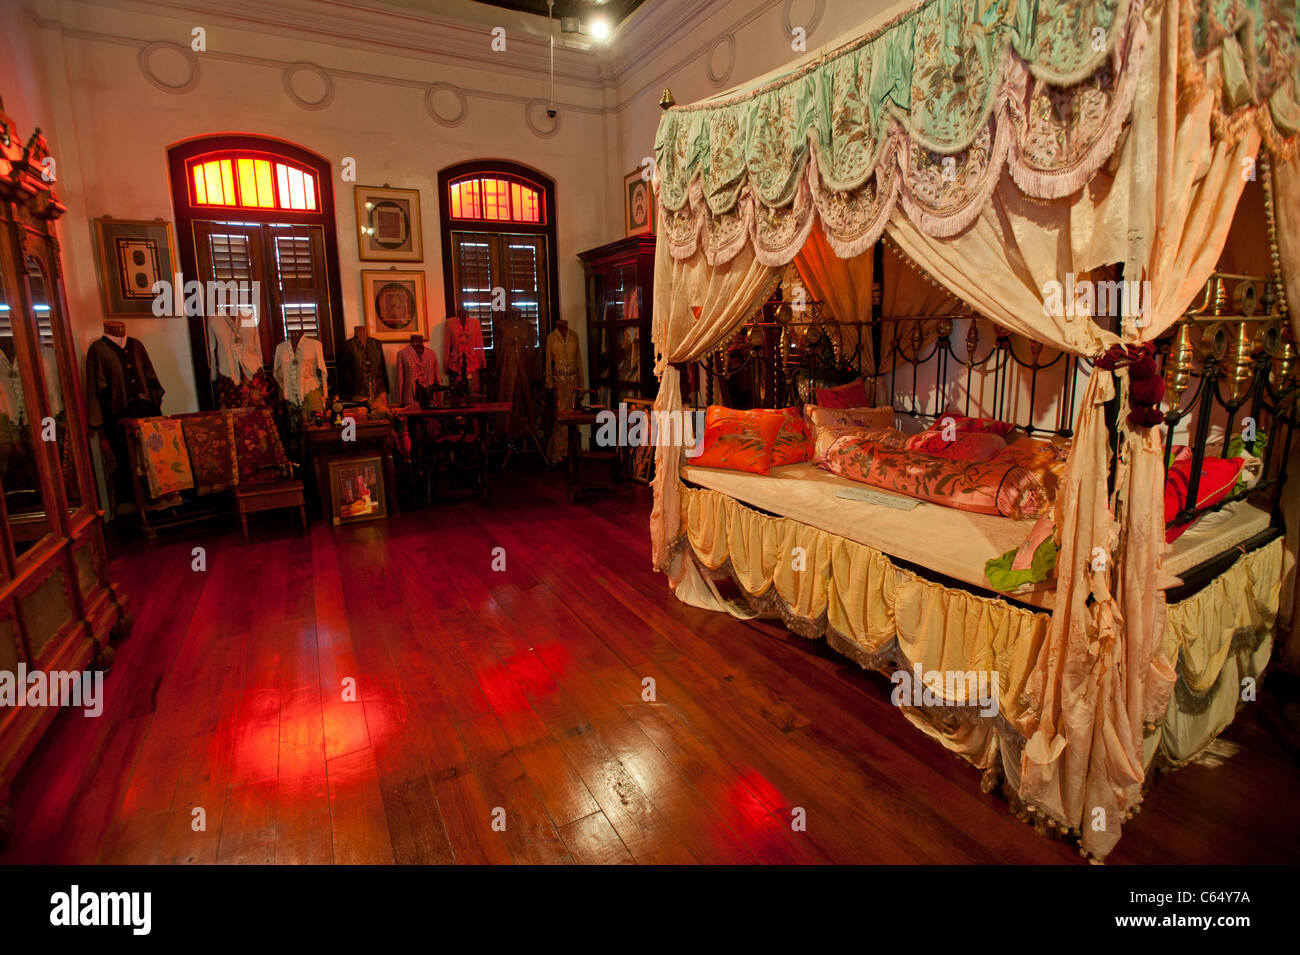 Bedroom in the Peranakan Mansion, George Town, Penang Malaysia - Stock Image